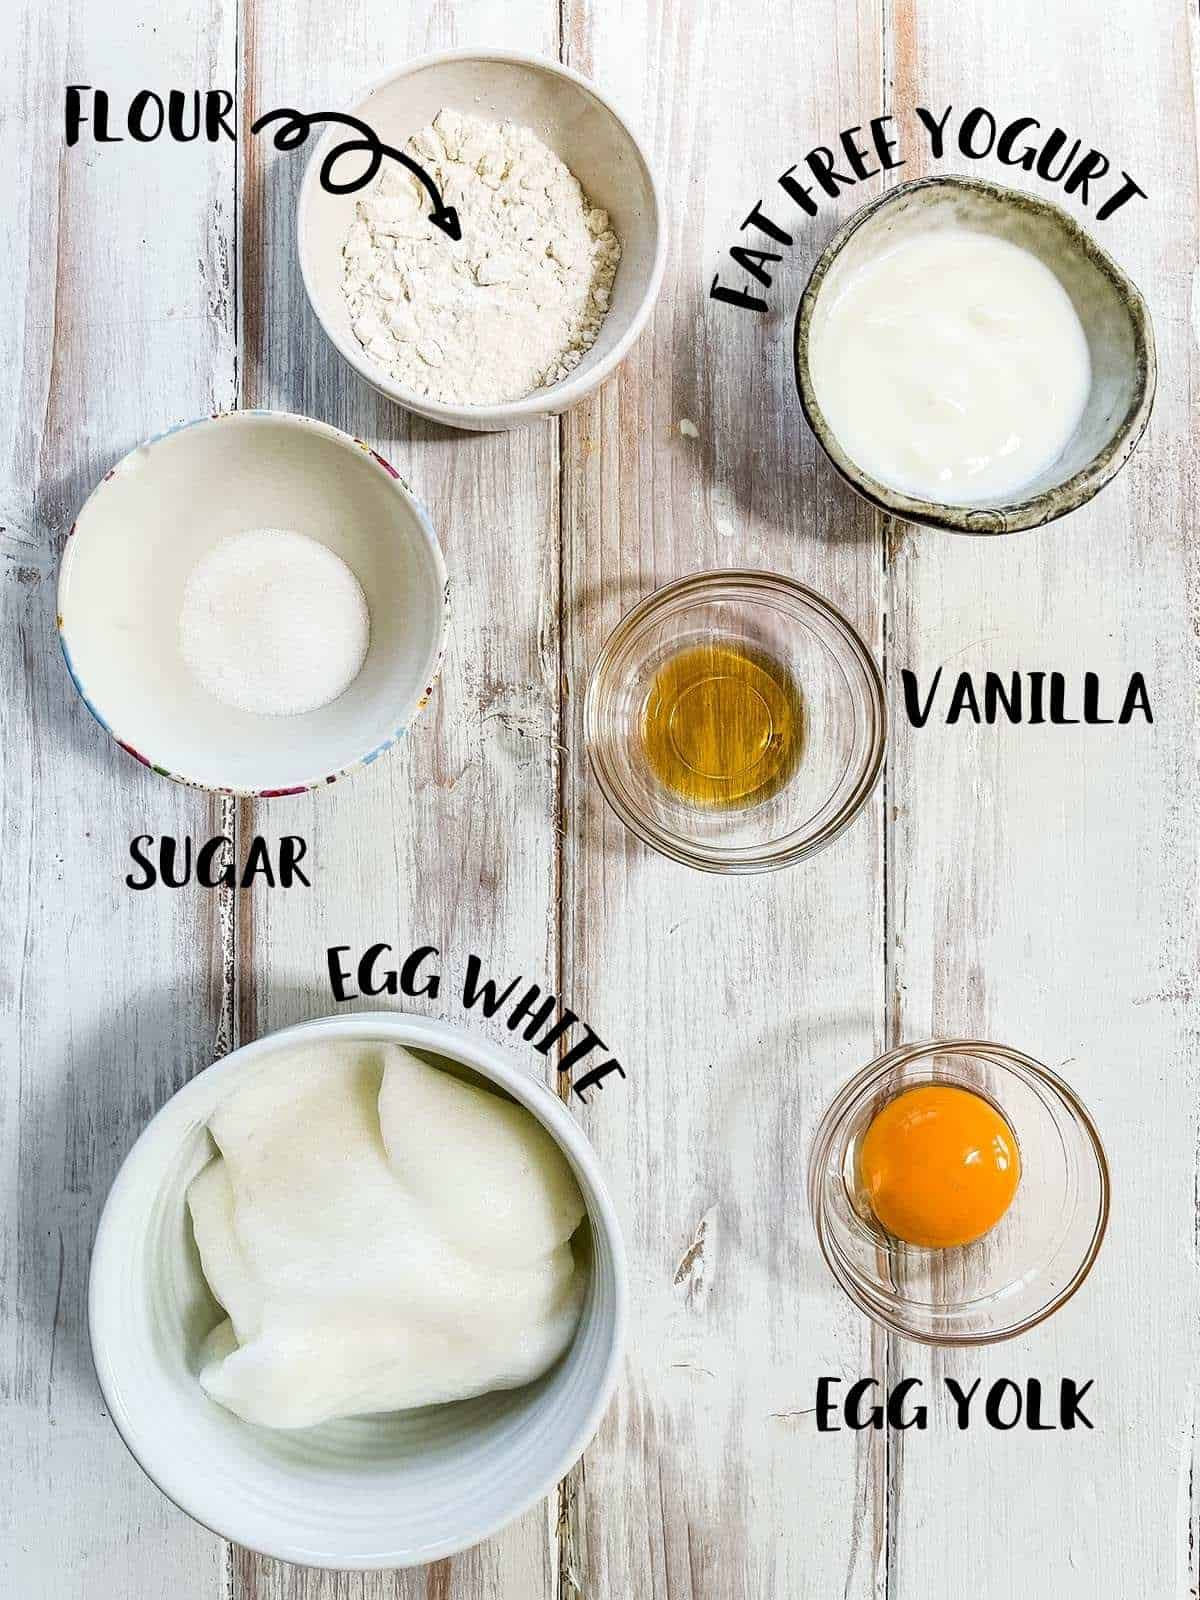 Dishes of the ingredients needed to make pancakes with labels.